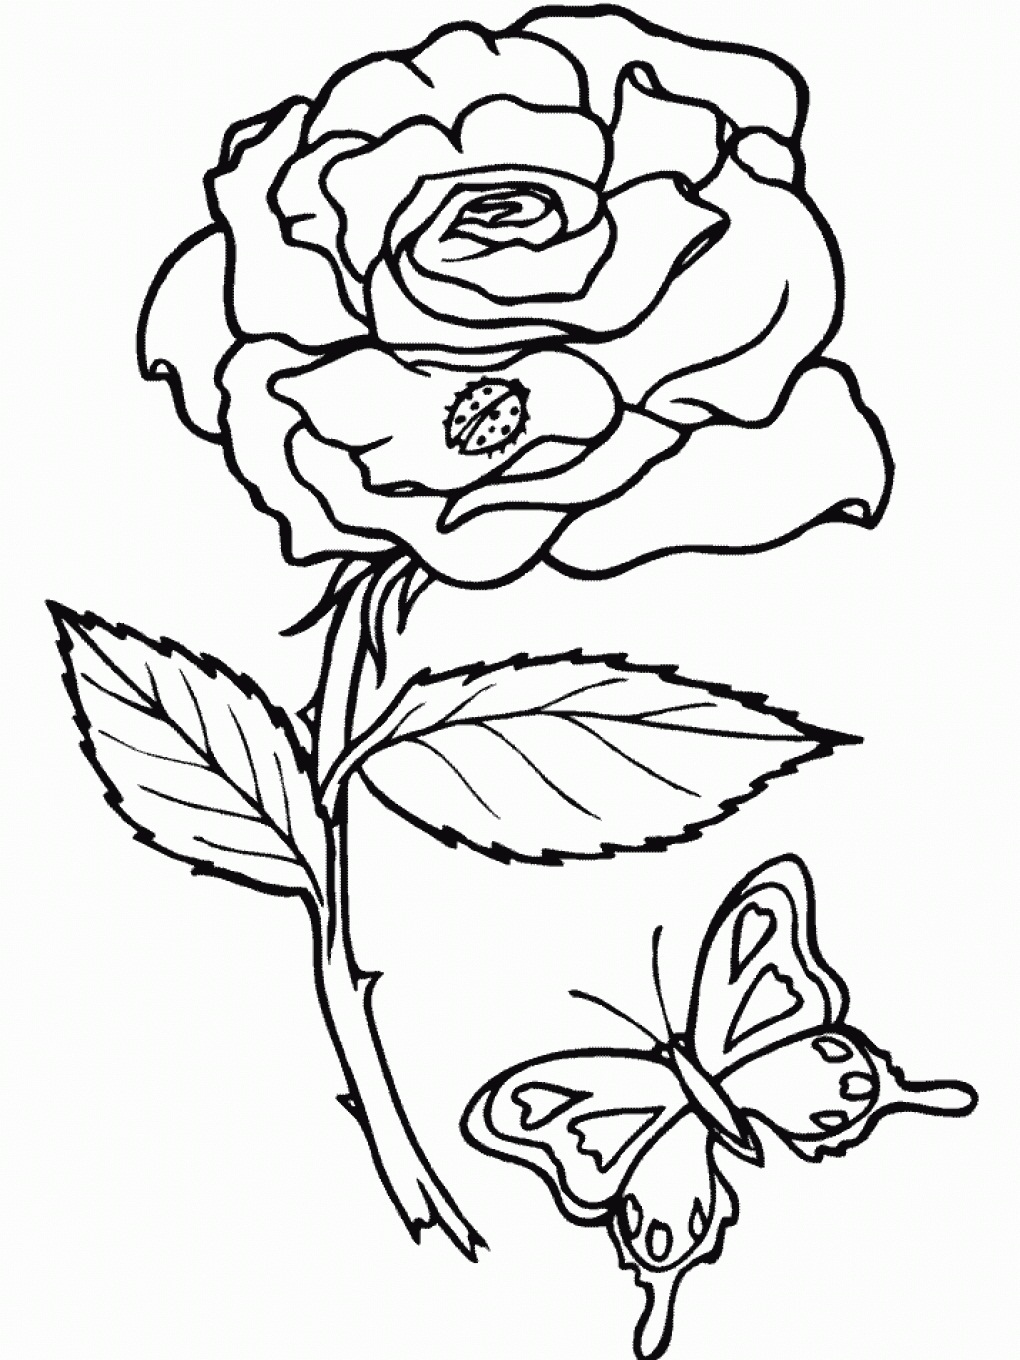 Coloring sheets roses - Rose Coloring Pages Printable